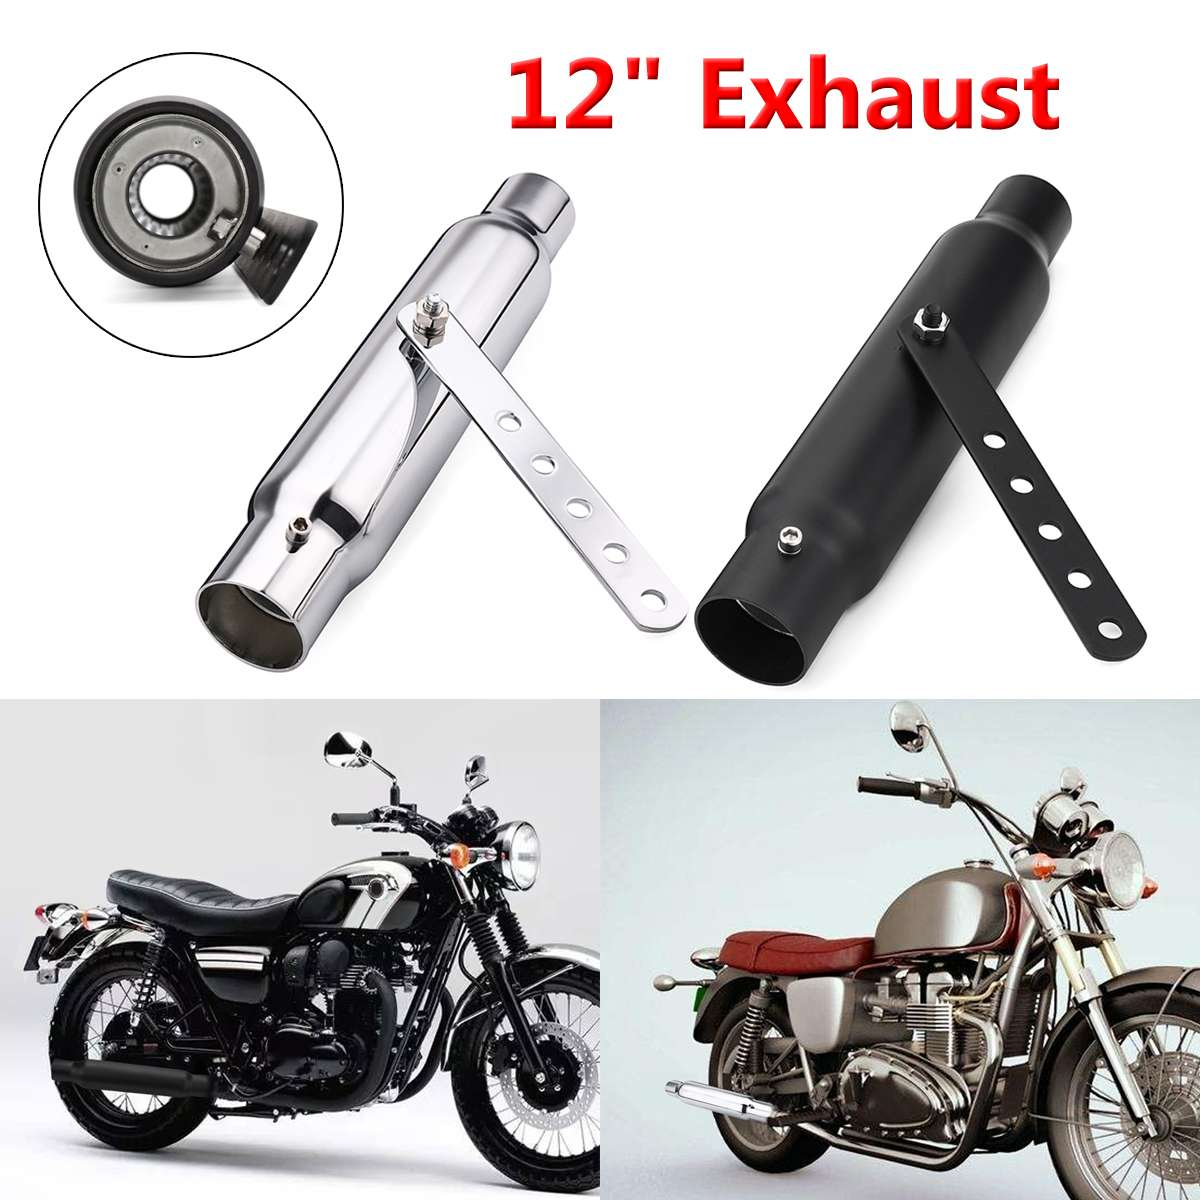 Universal 12 Motorcycle Exhaust Pipe Short Exhaust Tip Rear Tail Tube For Harley Custom Cafe RacersUniversal 12 Motorcycle Exhaust Pipe Short Exhaust Tip Rear Tail Tube For Harley Custom Cafe Racers